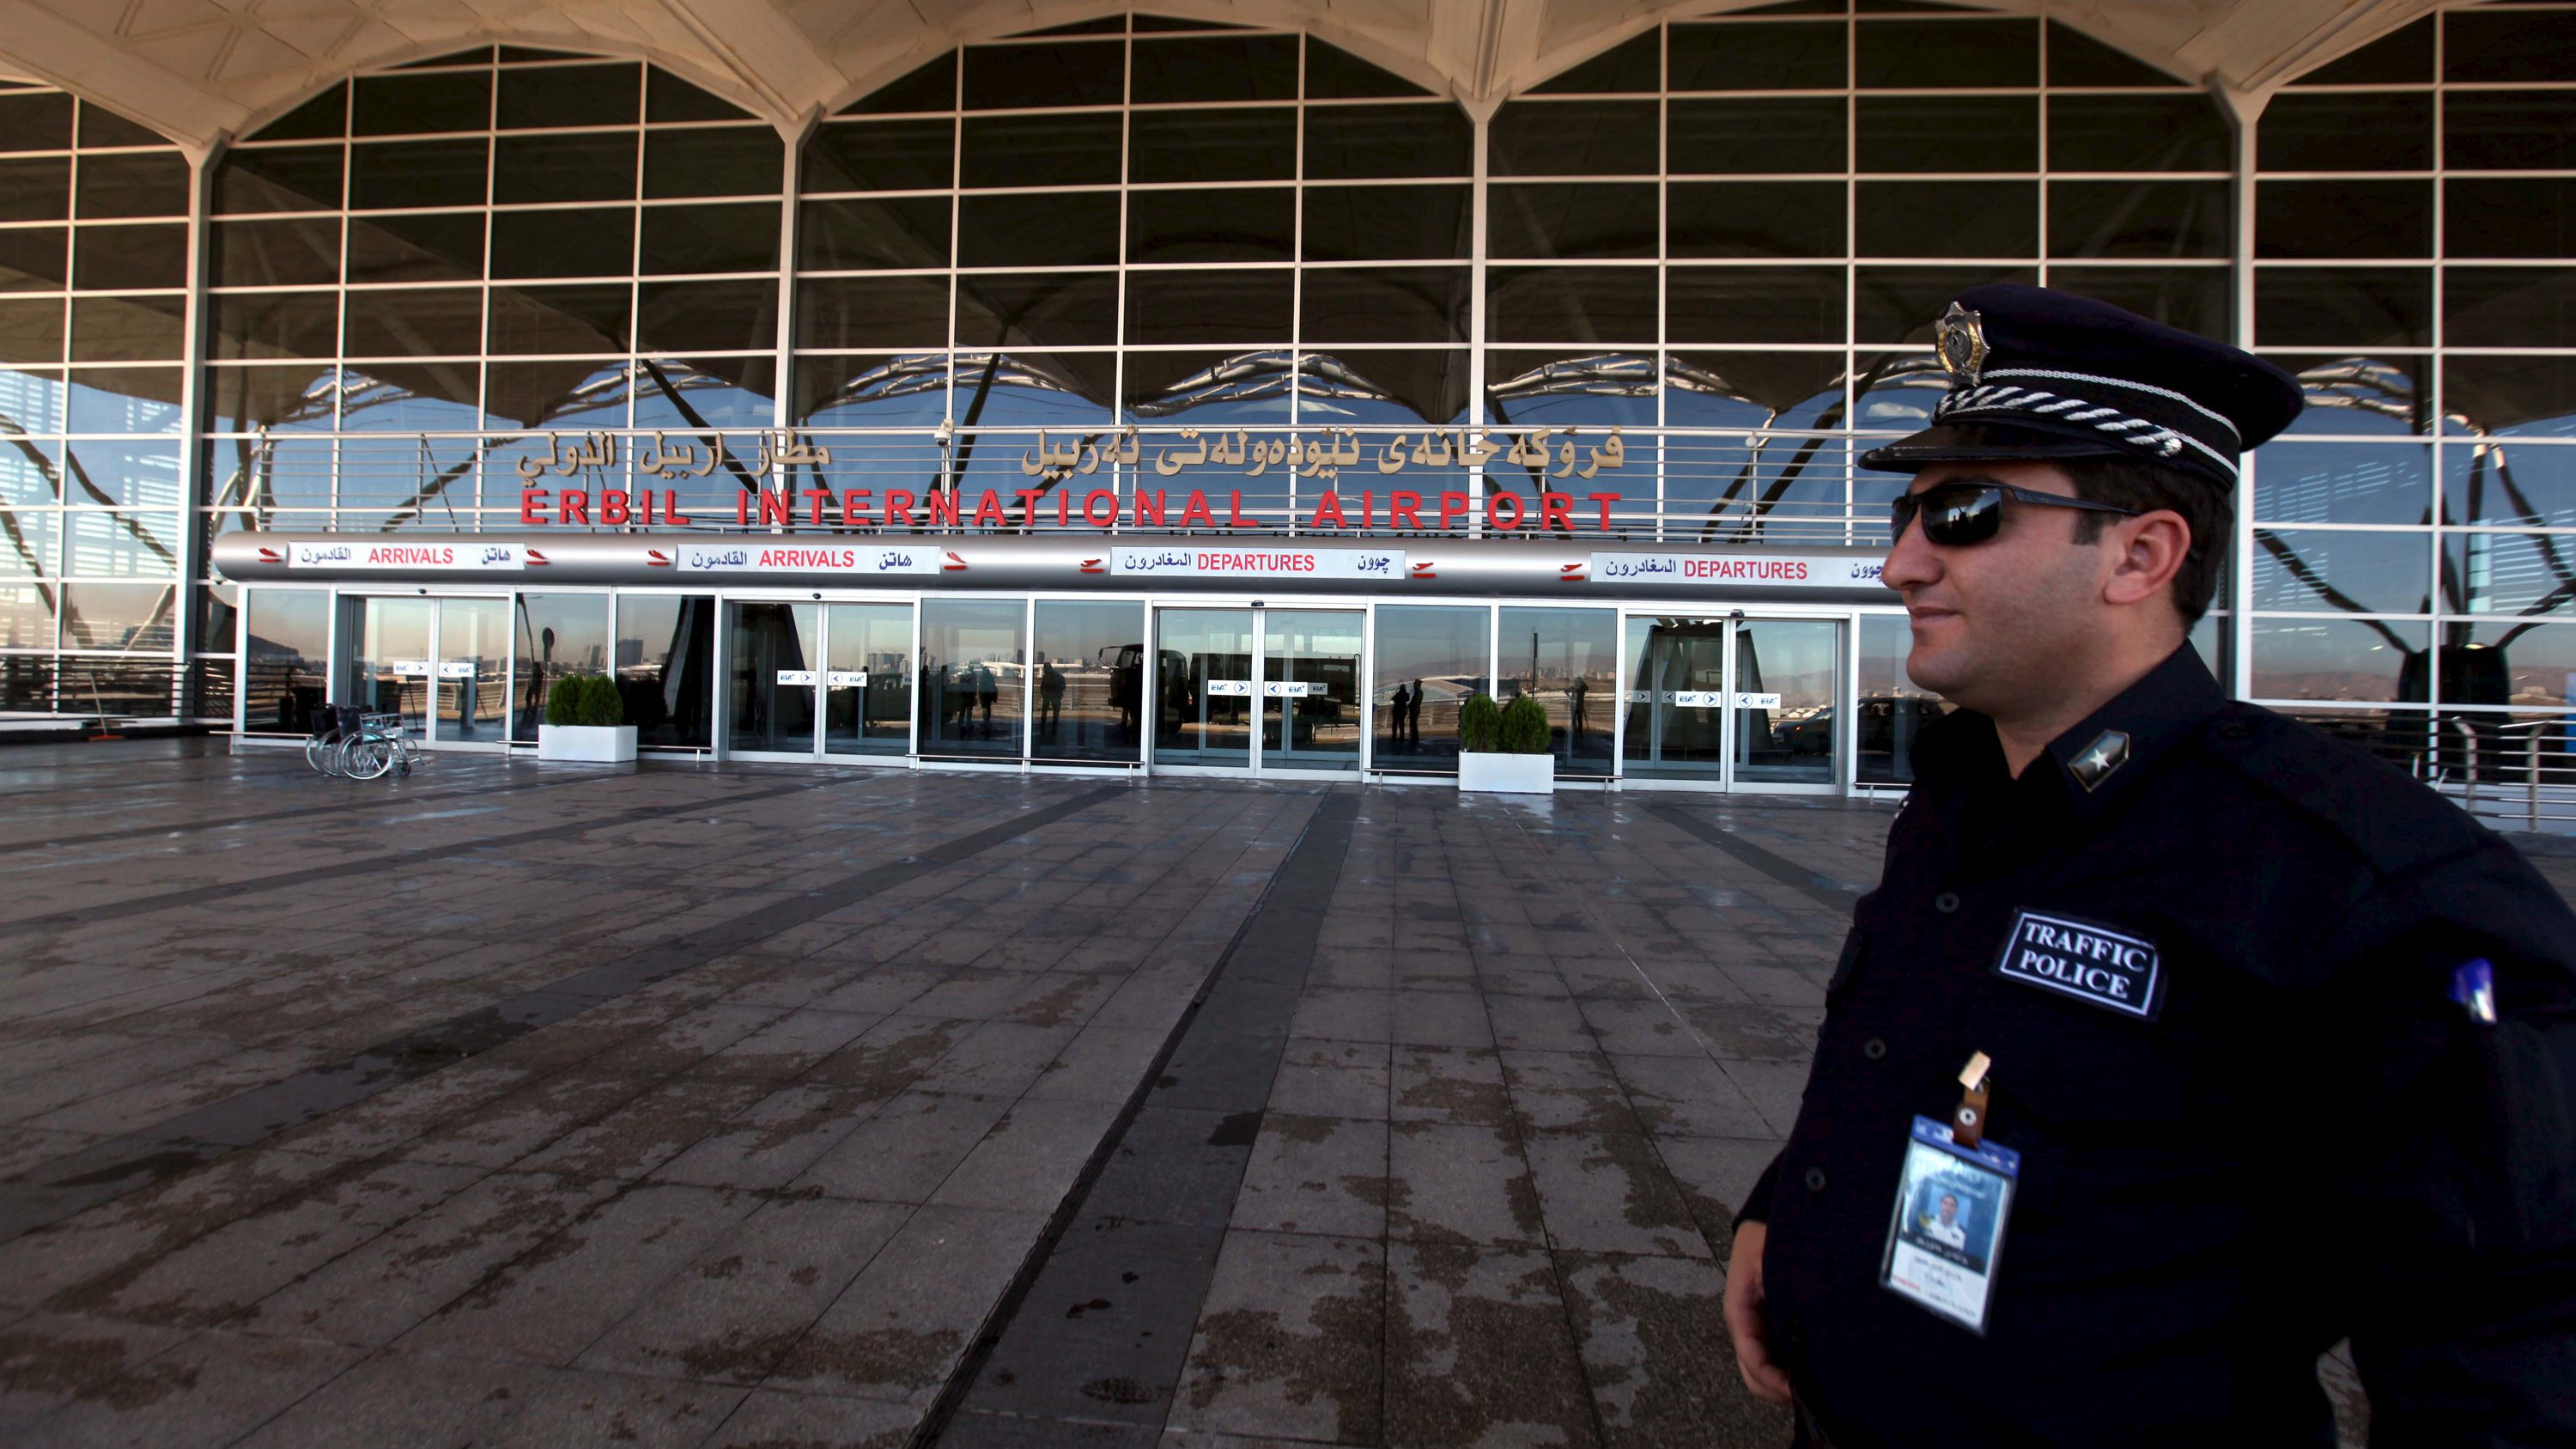 A Kurdish policeman stands guard at Erbil (Arbil) International Airport November 23, 2015. Iraq said it was suspending flights between Baghdad and the northern cities of Erbil and Sulaimaniya for two days starting on Monday due to military traffic from Russia's air campaign in neighbouring Syria.   REUTERS/Azad Lashkari  - RTX1VF4E